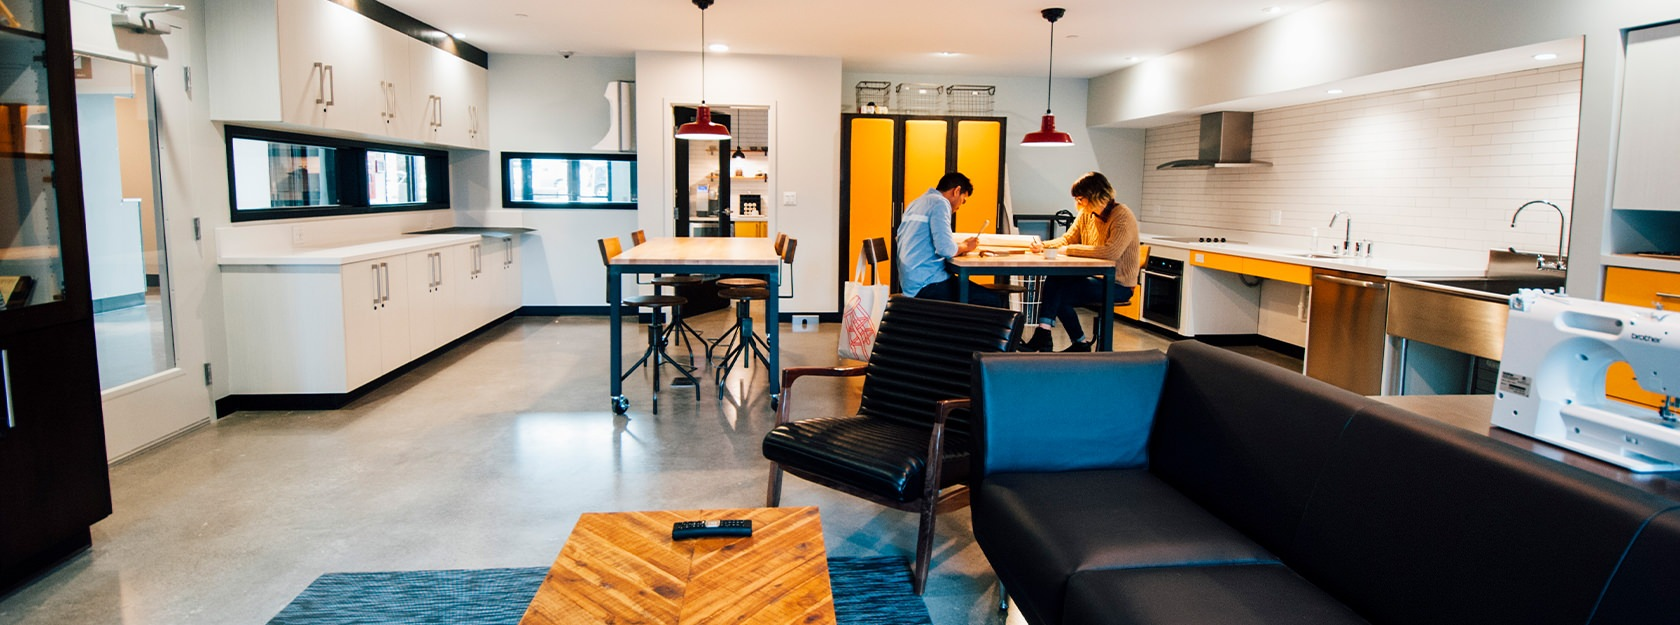 Smith & Burns co-working space